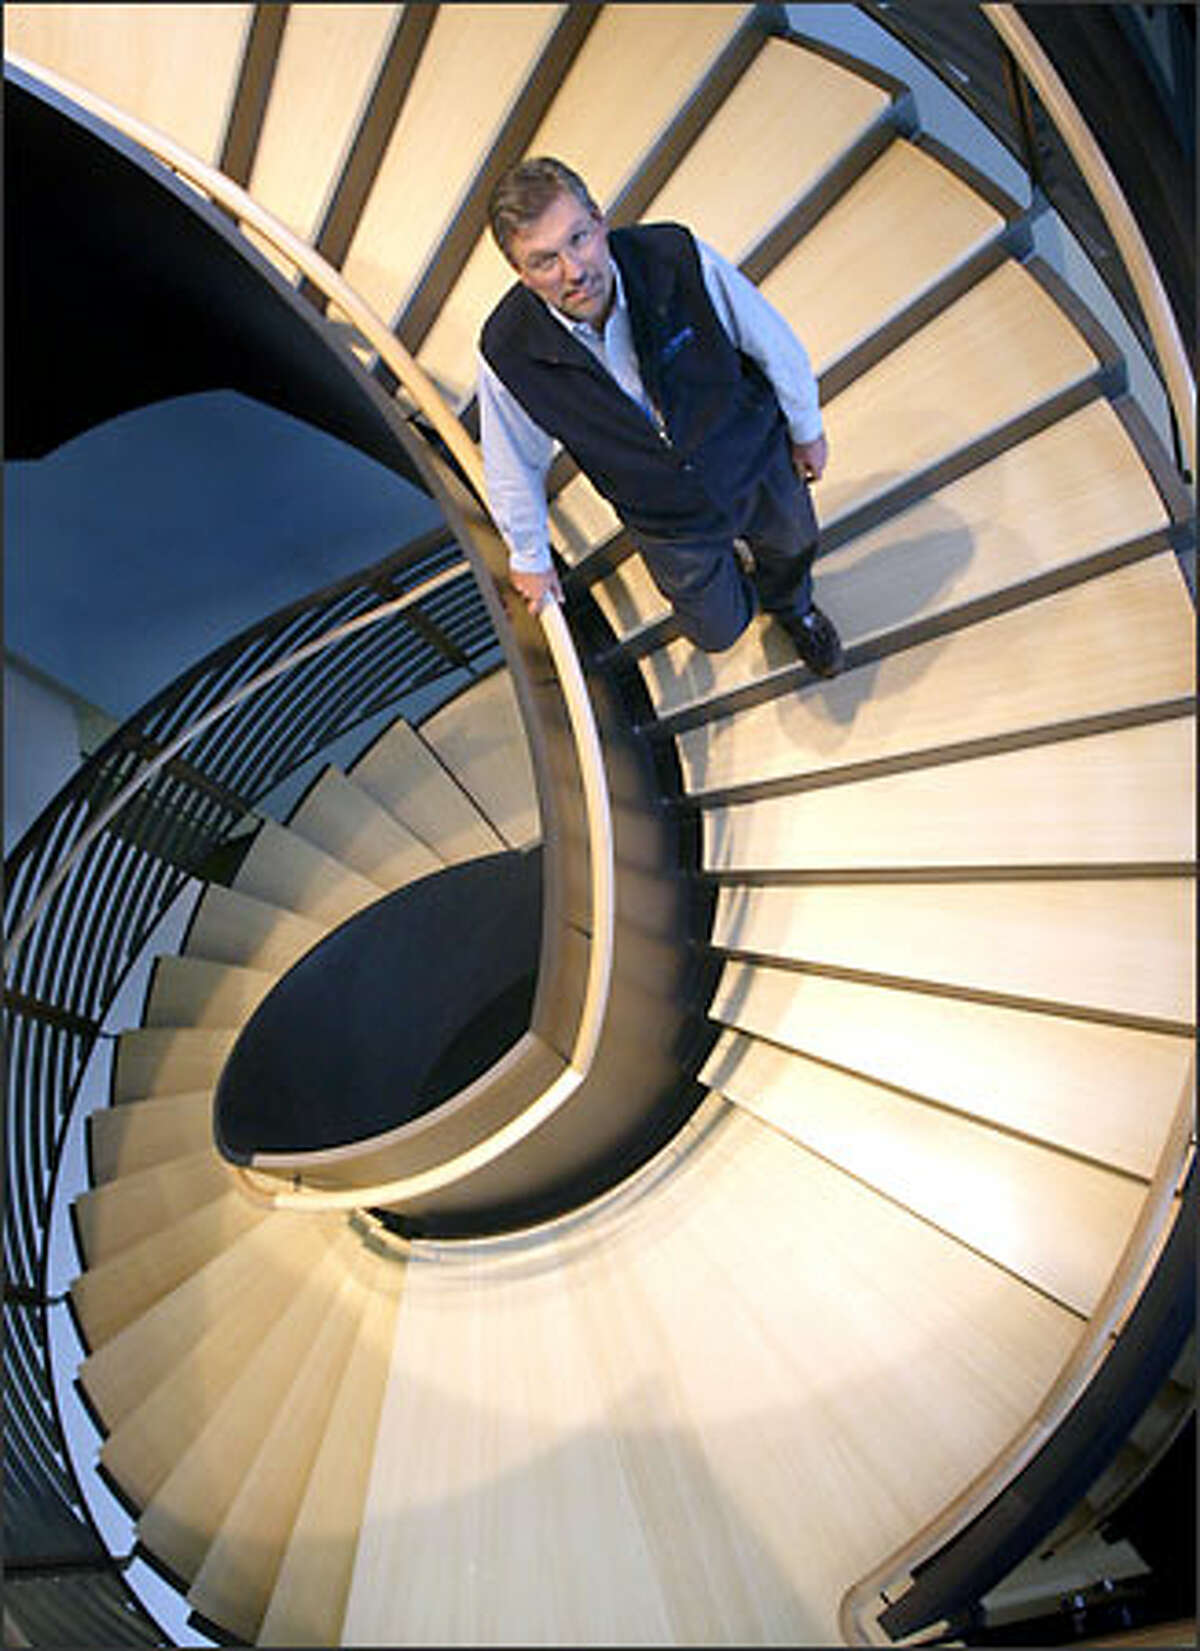 Randy Hassler, vice president of operations and quality for Amgen, shows off one of two spiral staircases inside the new campus.